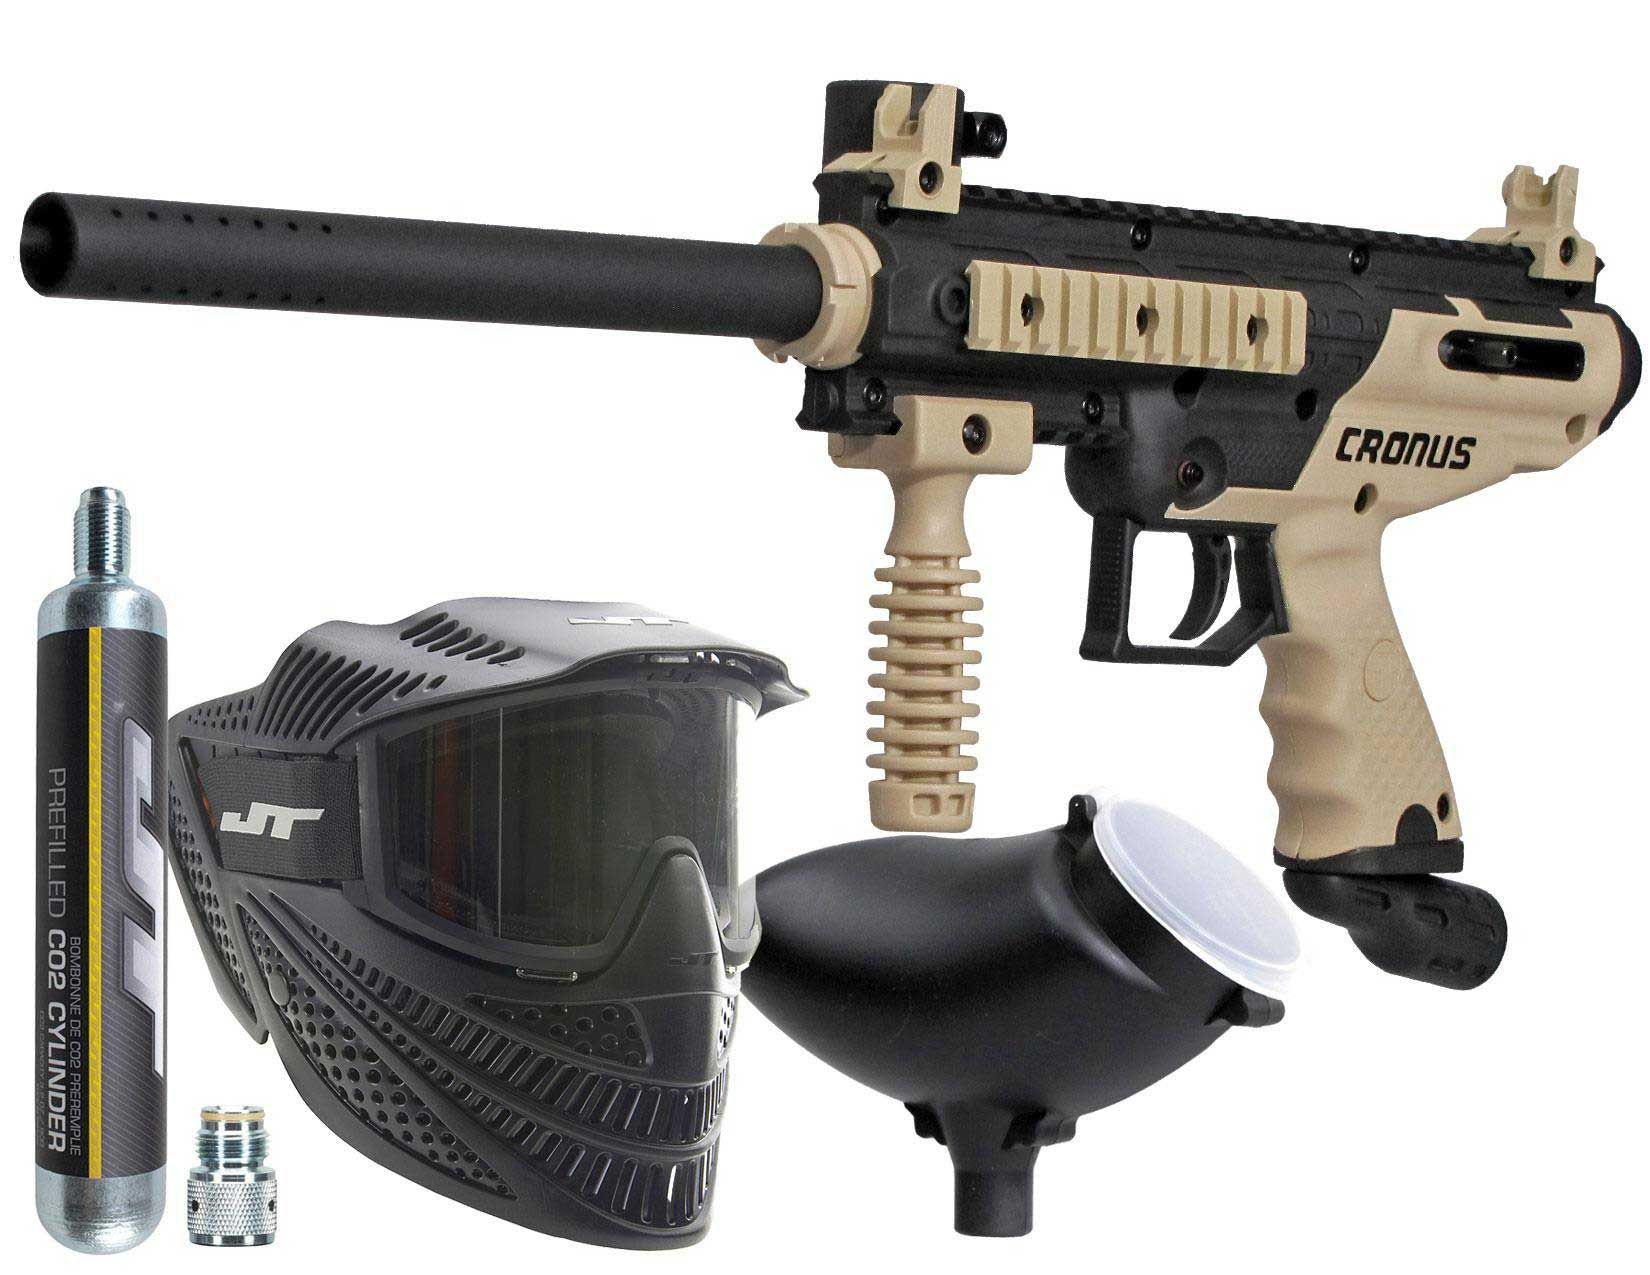 Tippmann Cronus PowerPack Paintball Gun Kit DICKS Sporting Goods - Pest control invoice template free best online gun store